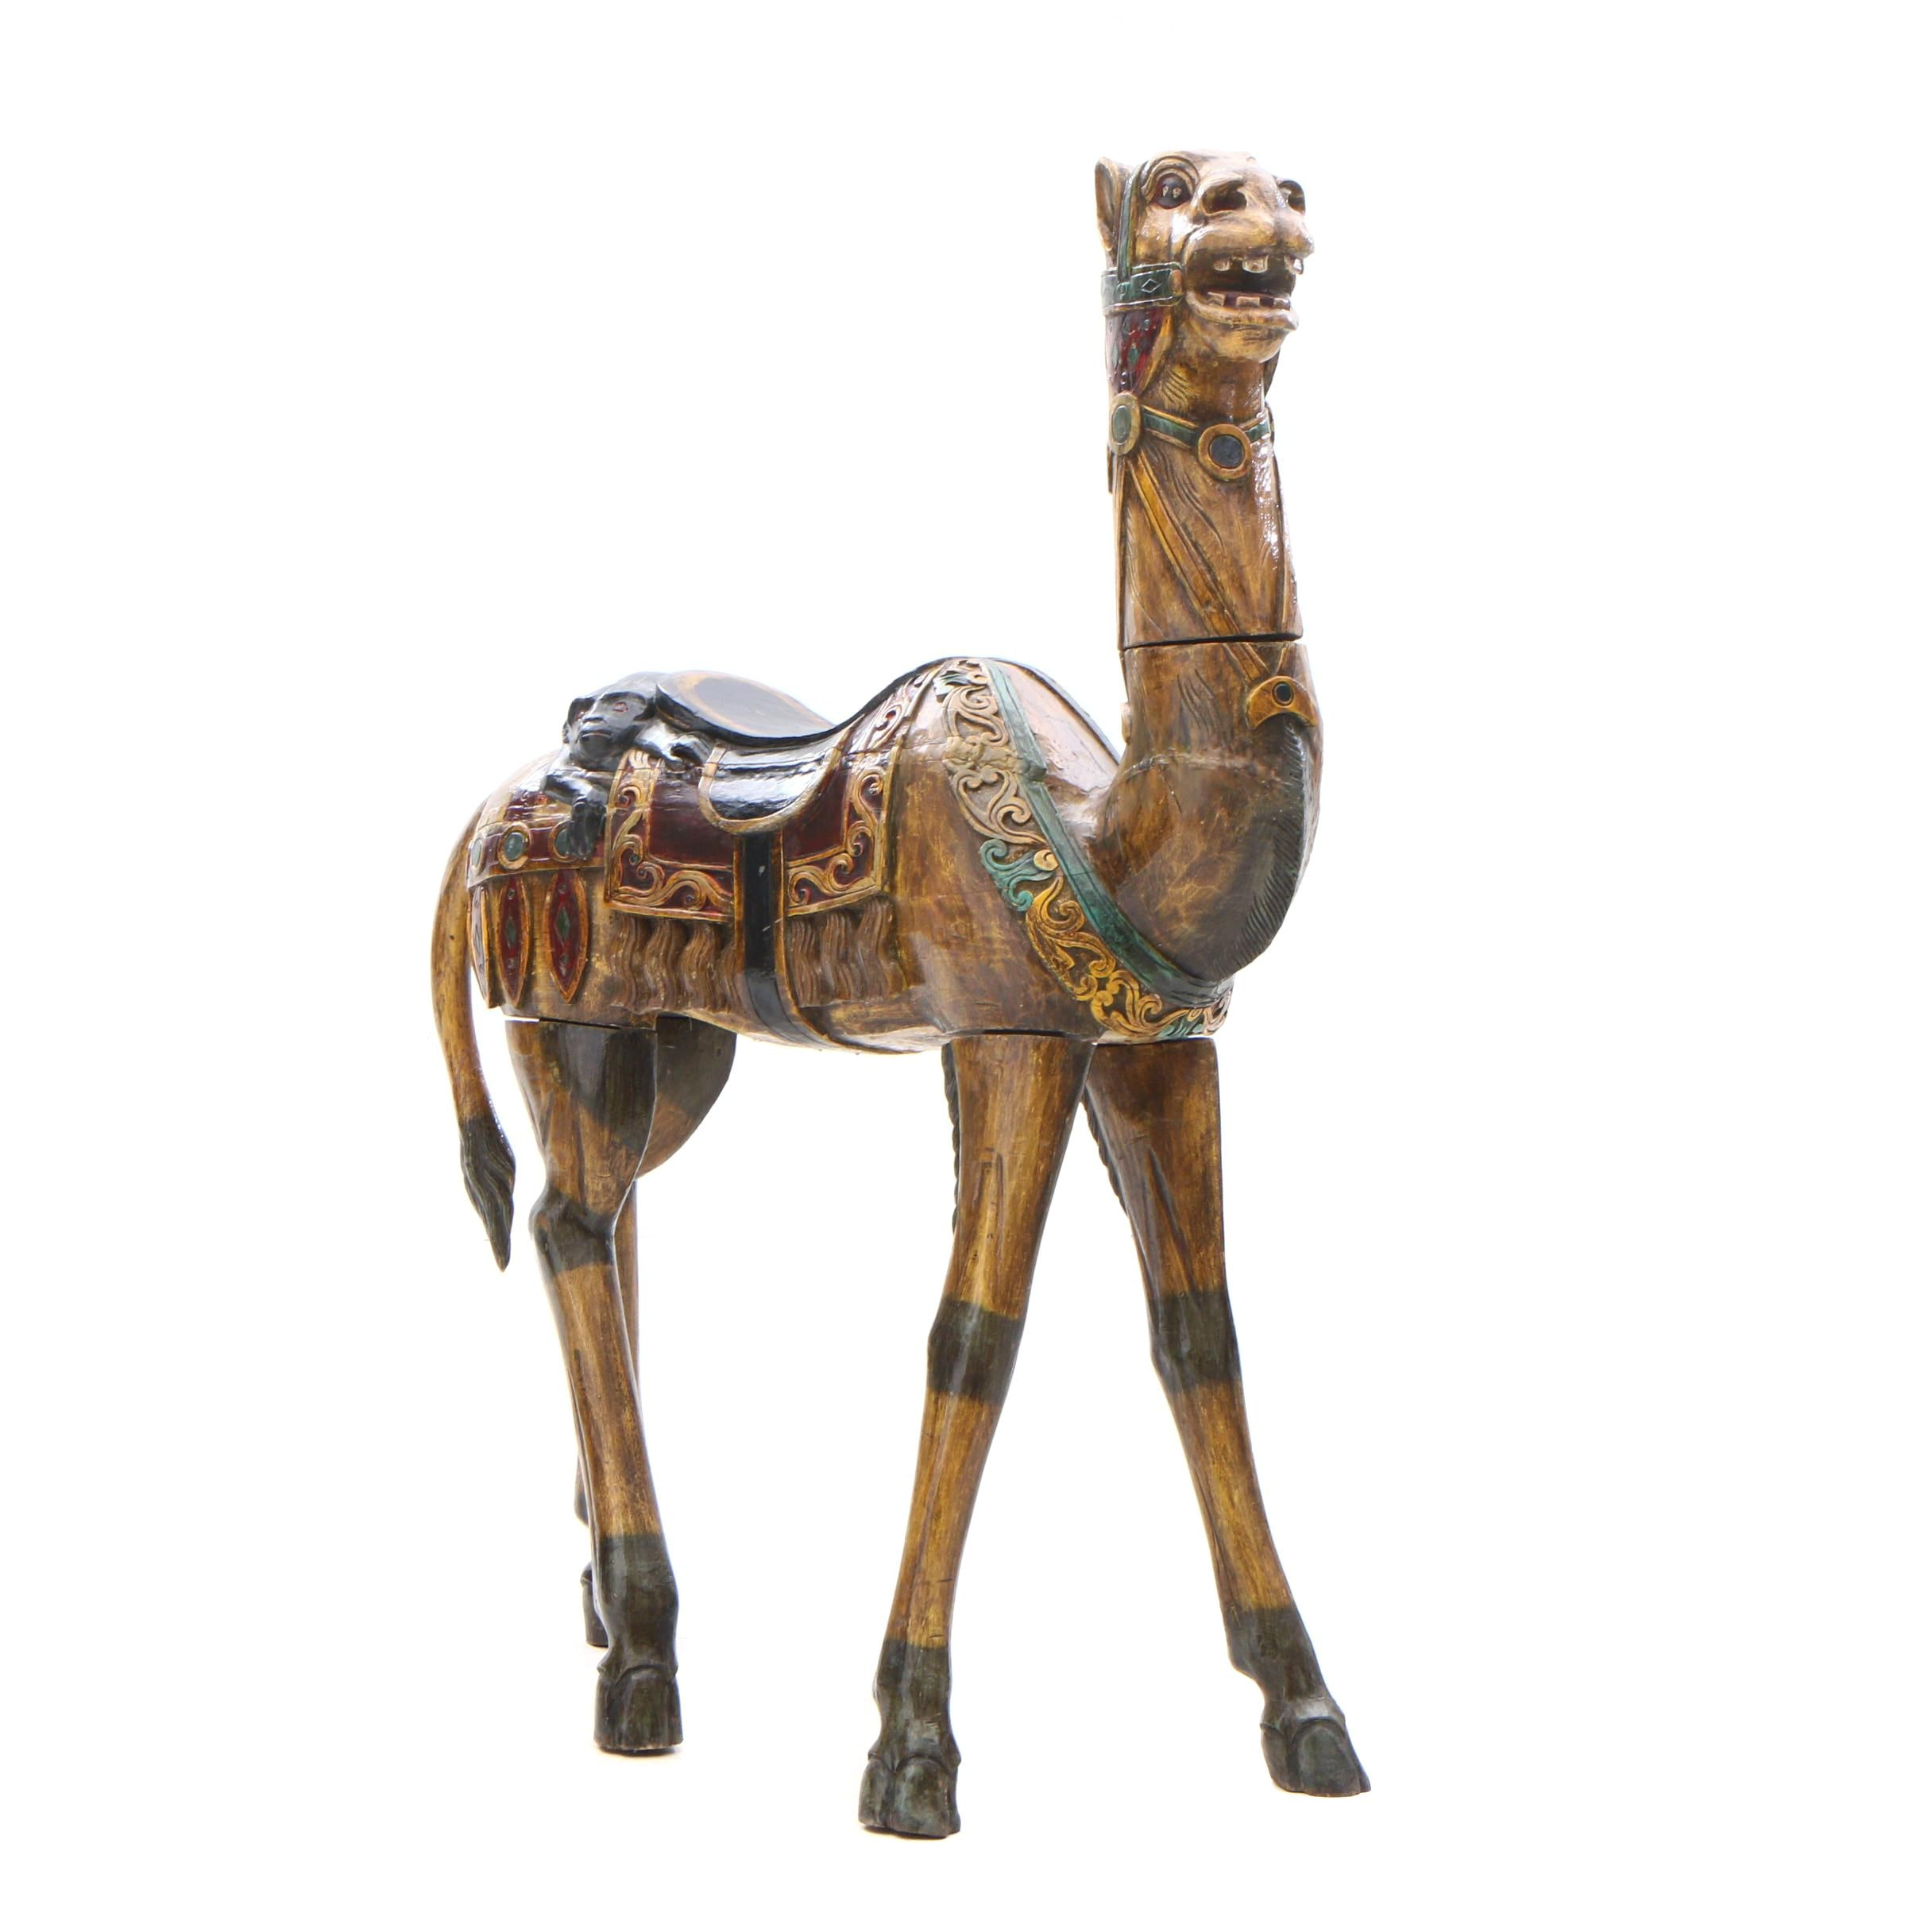 Contemporary Chinese Carved Wood and Polychromed Camel Figure